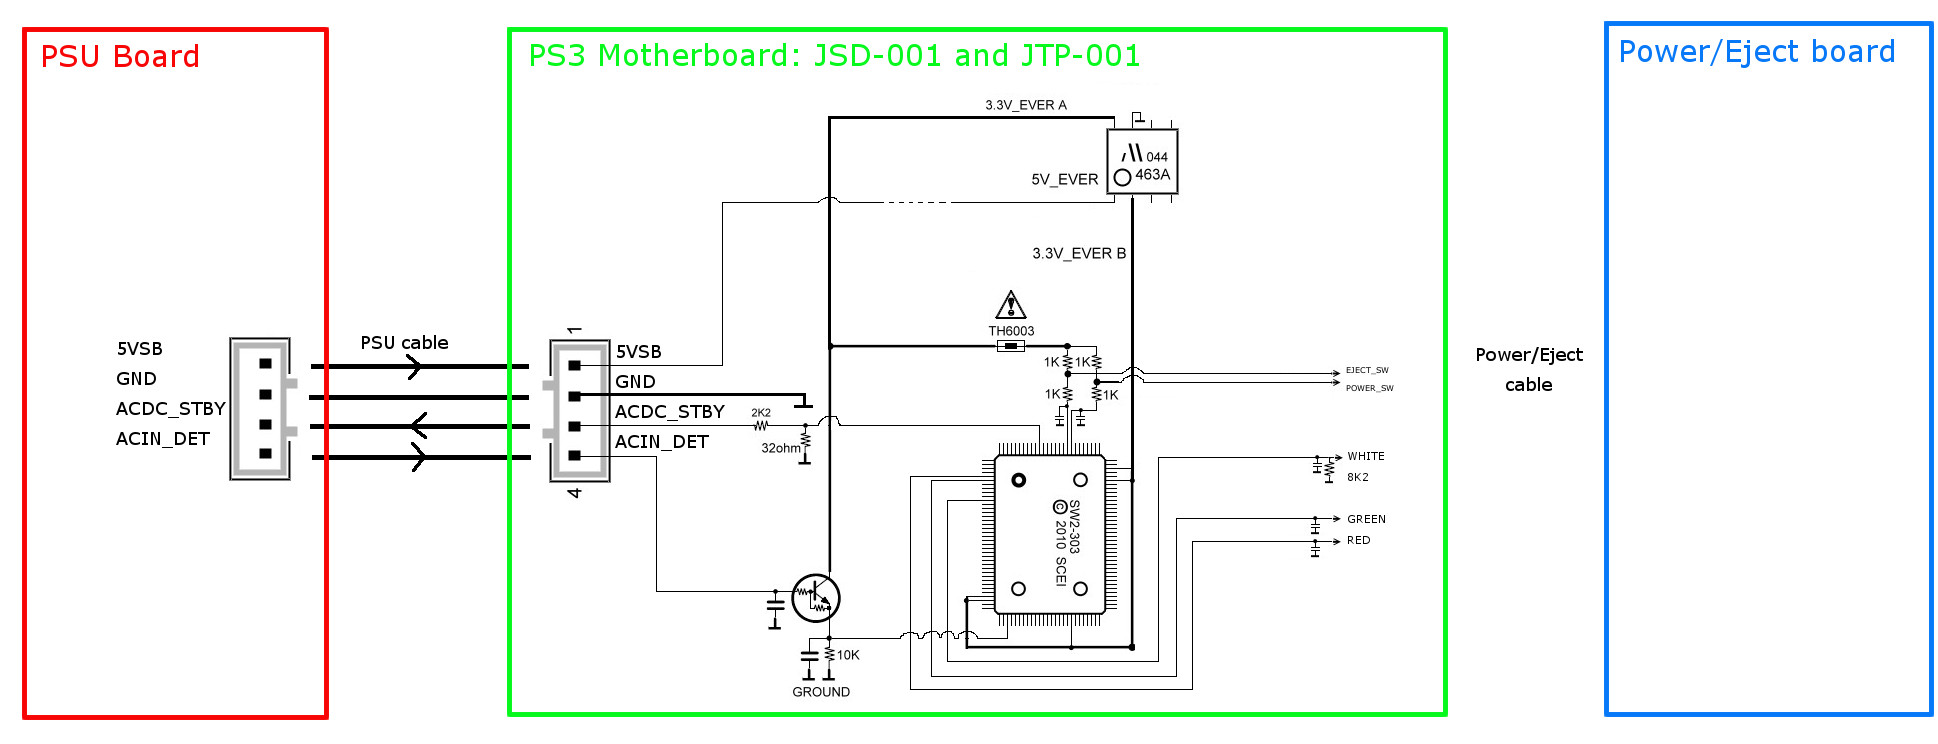 Xbox 360 Controller Wiring Diagram Schematic | Wiring Liry Xbox Power Supply Schematic on